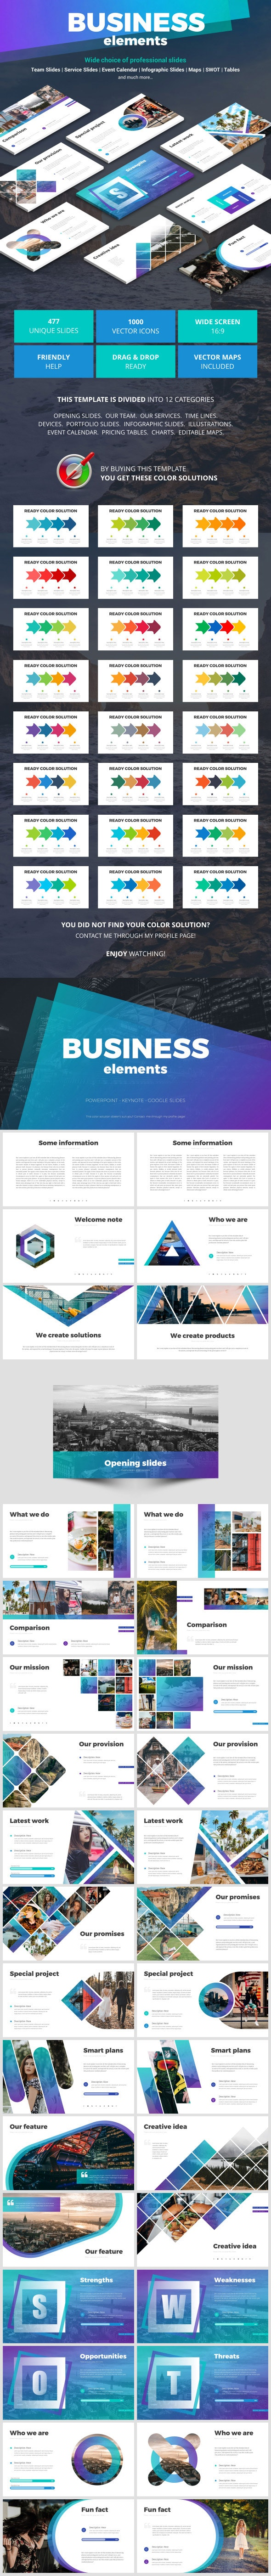 Business Elements - Business Keynote Templates